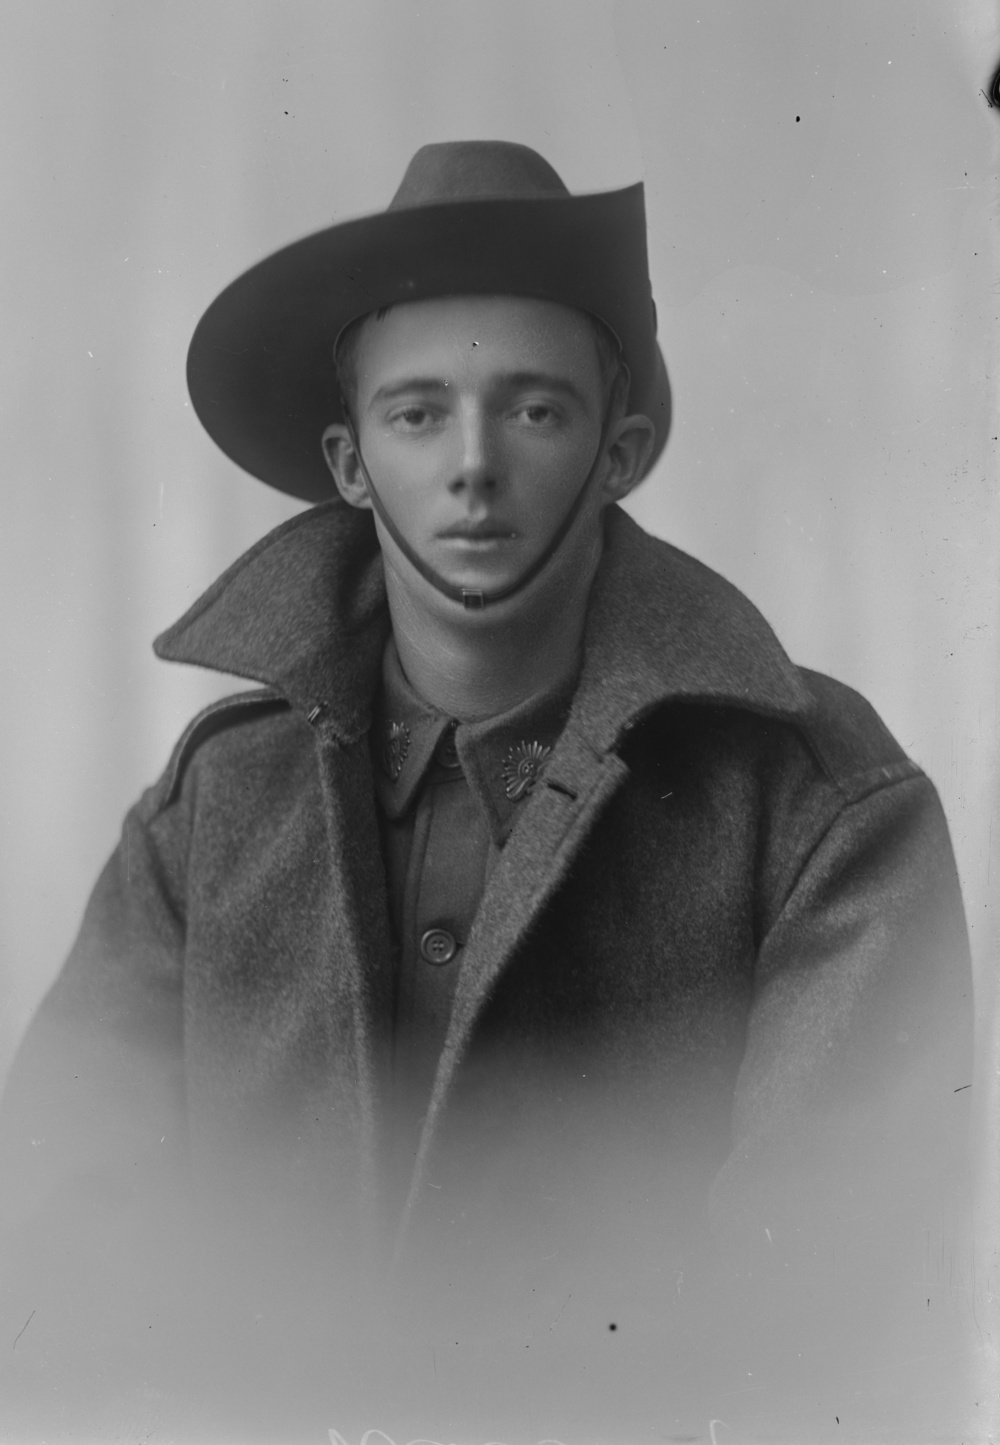 Photographed at the Dease Studio, 117 Barrack Street Perth WA Image courtesy of the State Library of Western Australia: 108531PD